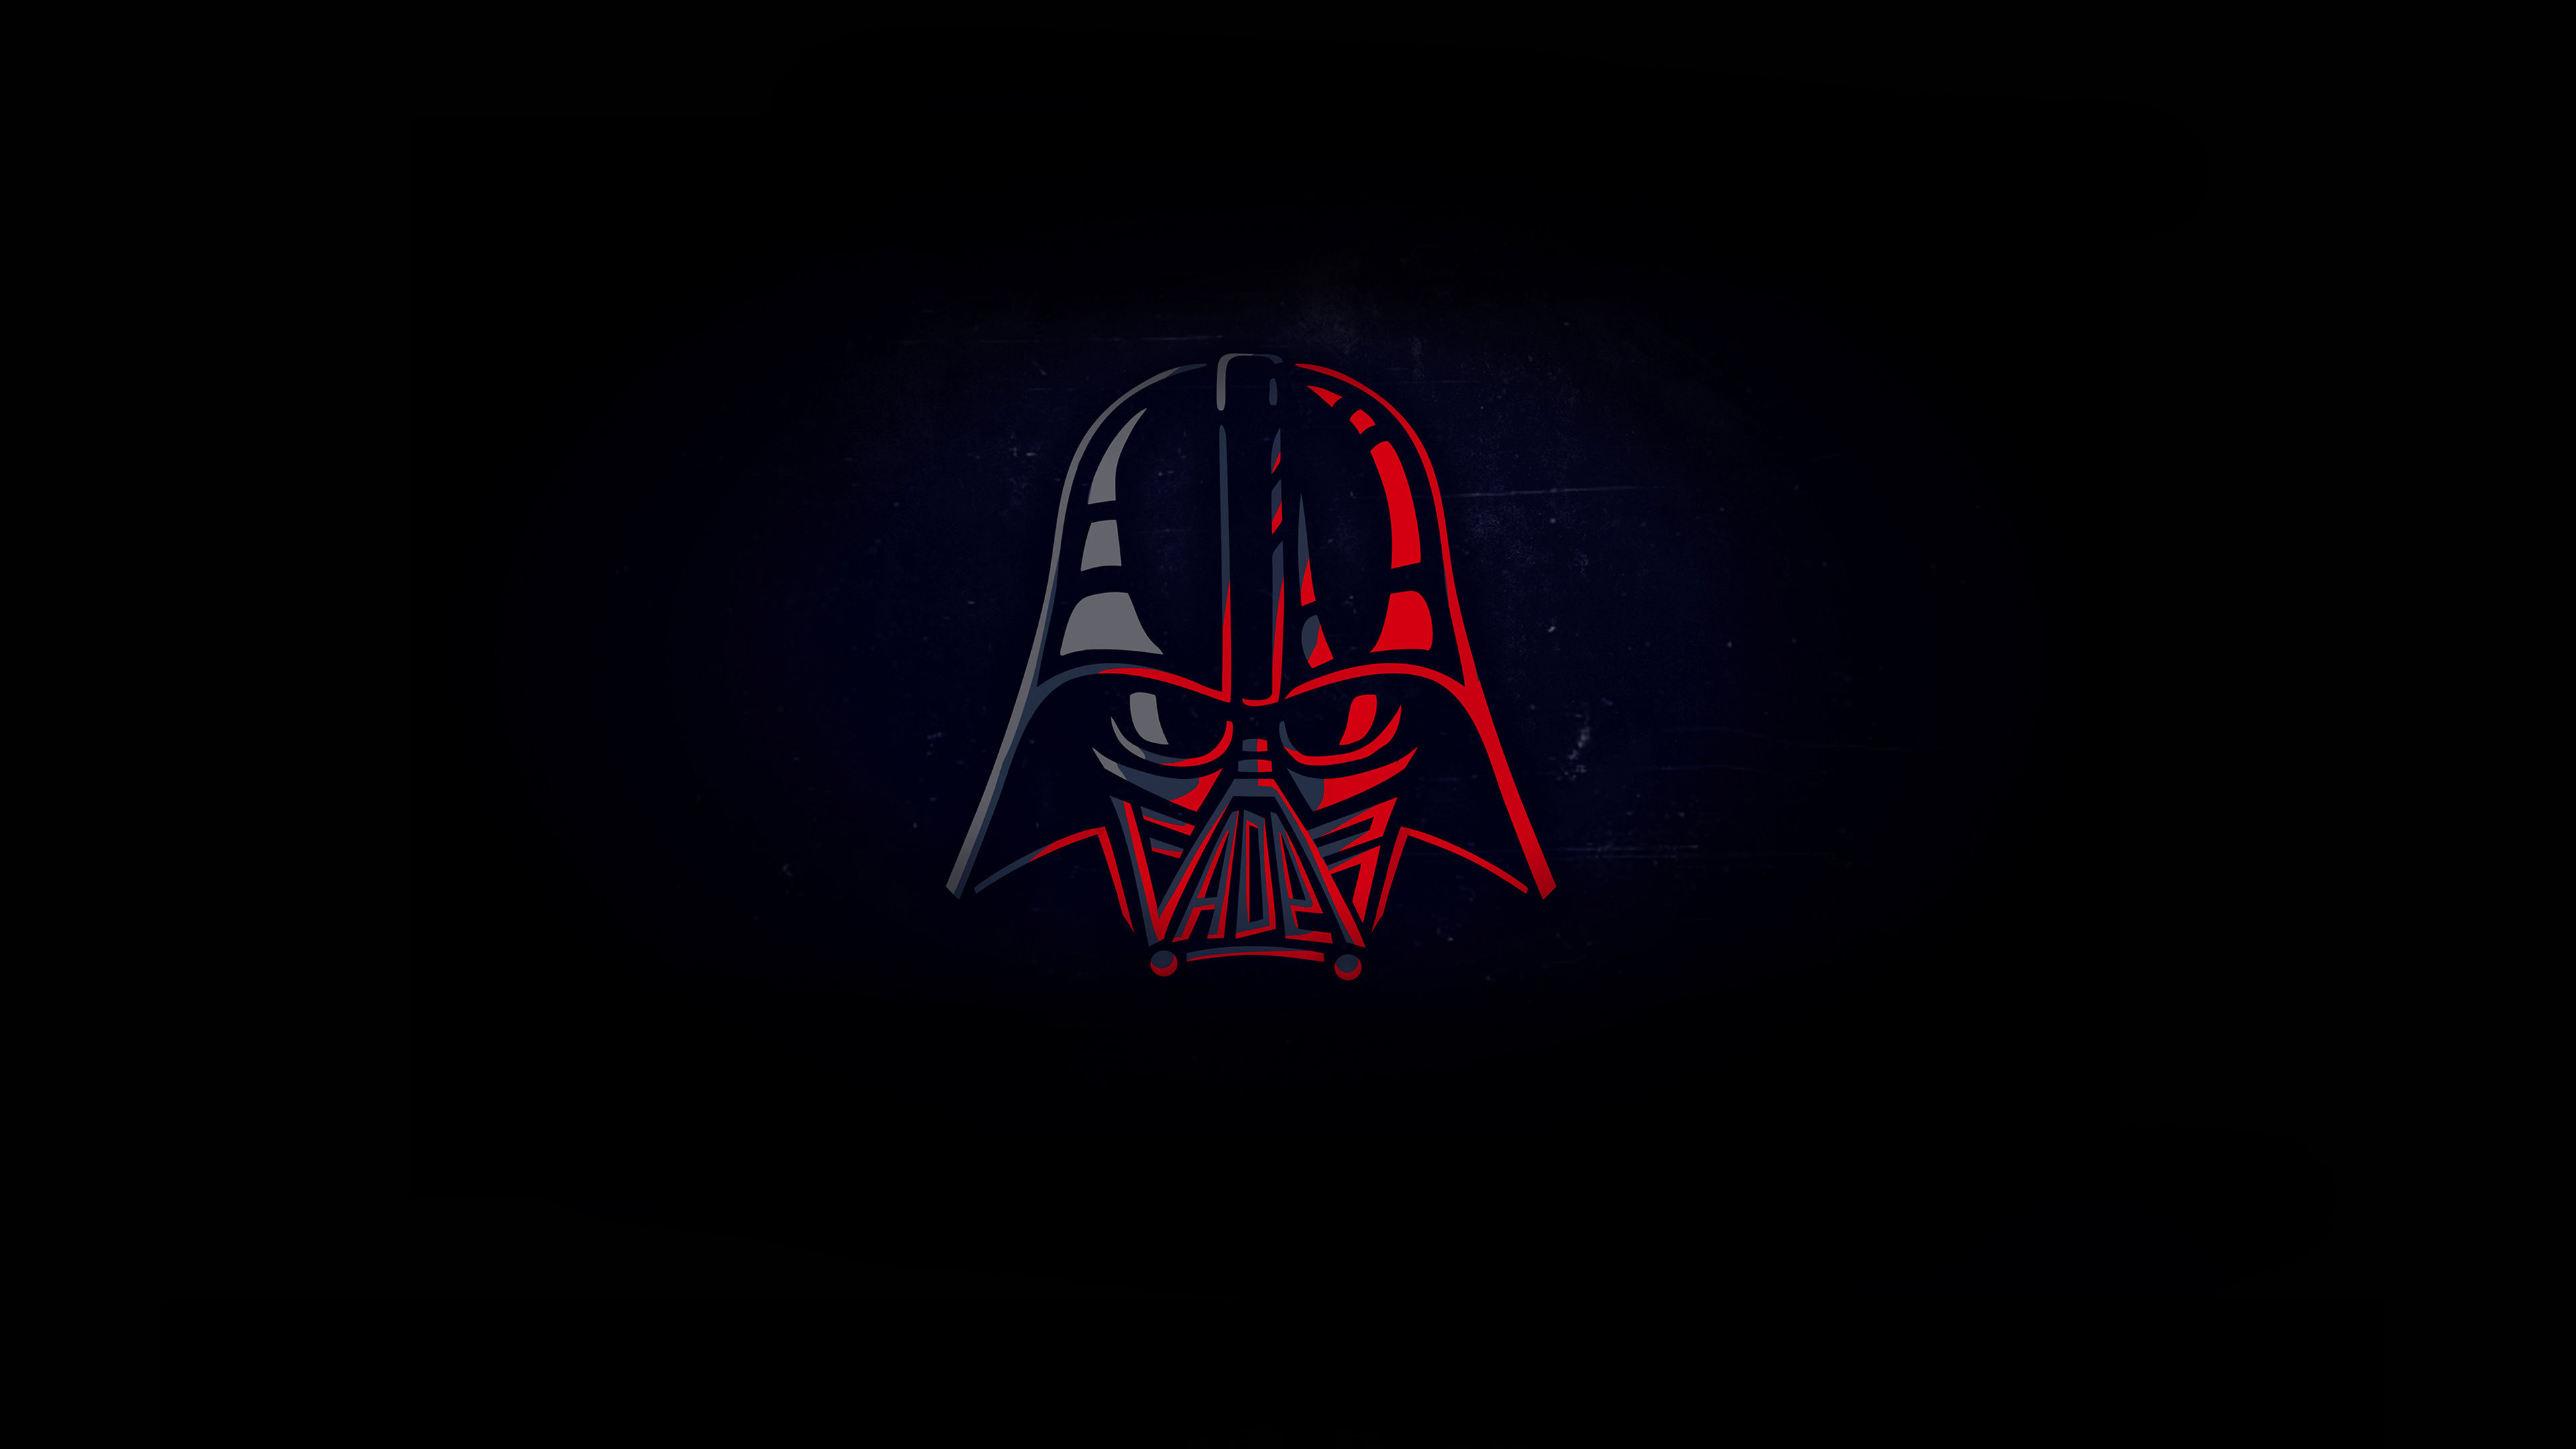 Darth Vader Minimal 4k Hd Superheroes 4k Wallpapers Images Backgrounds Photos And Pictures